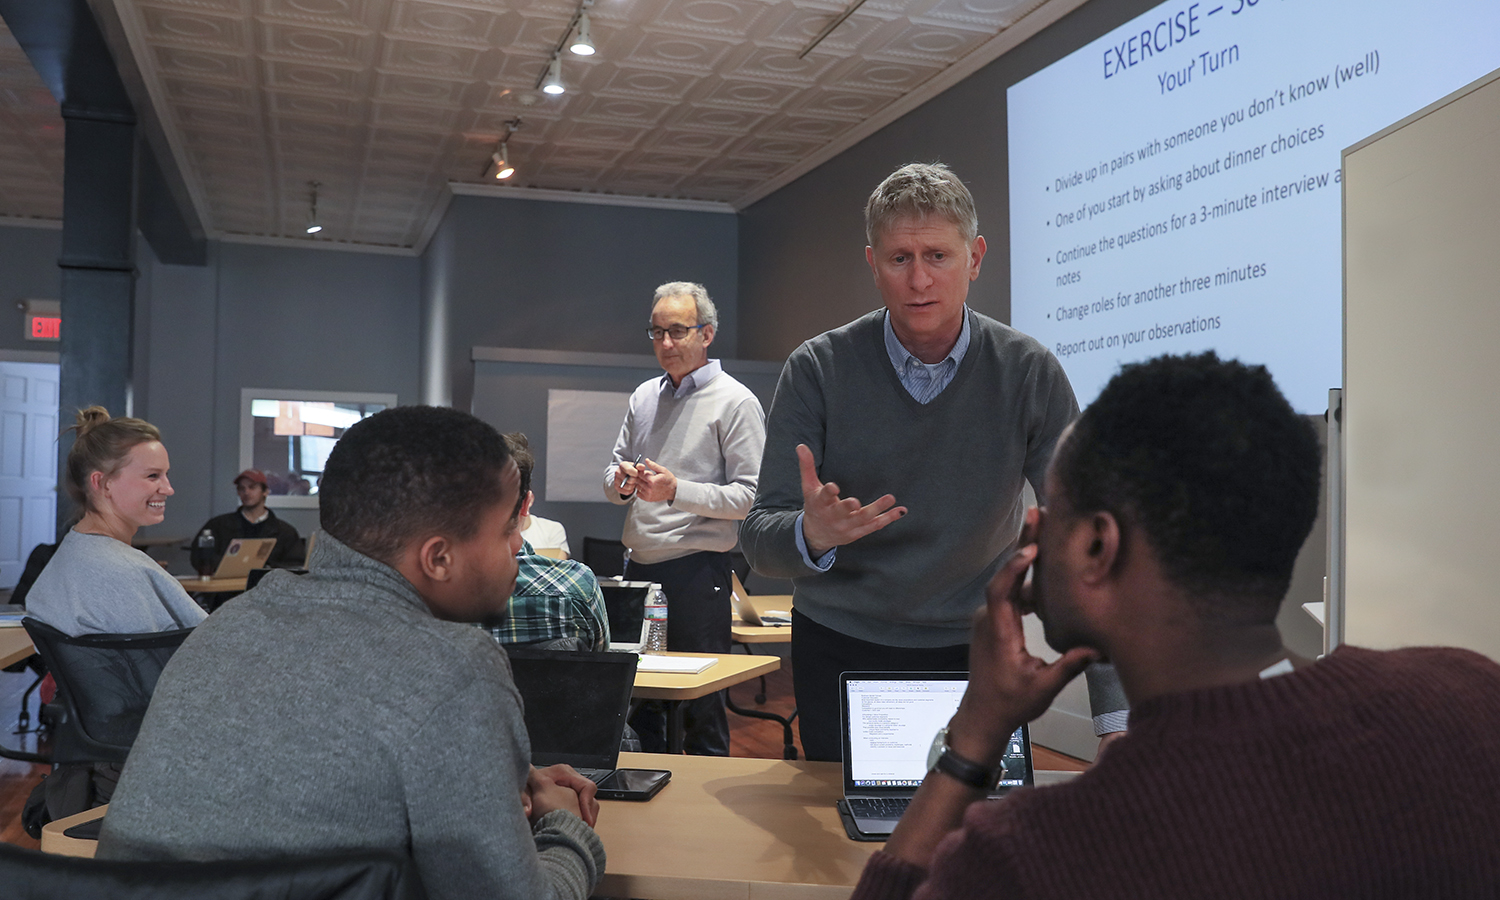 Professor of Economics Tom Drennen (left) and Margiloff Family Entrepreneurial Fellow Ed Bizari (right) work with students in the Bozzuto Center for Entrepreneurship.